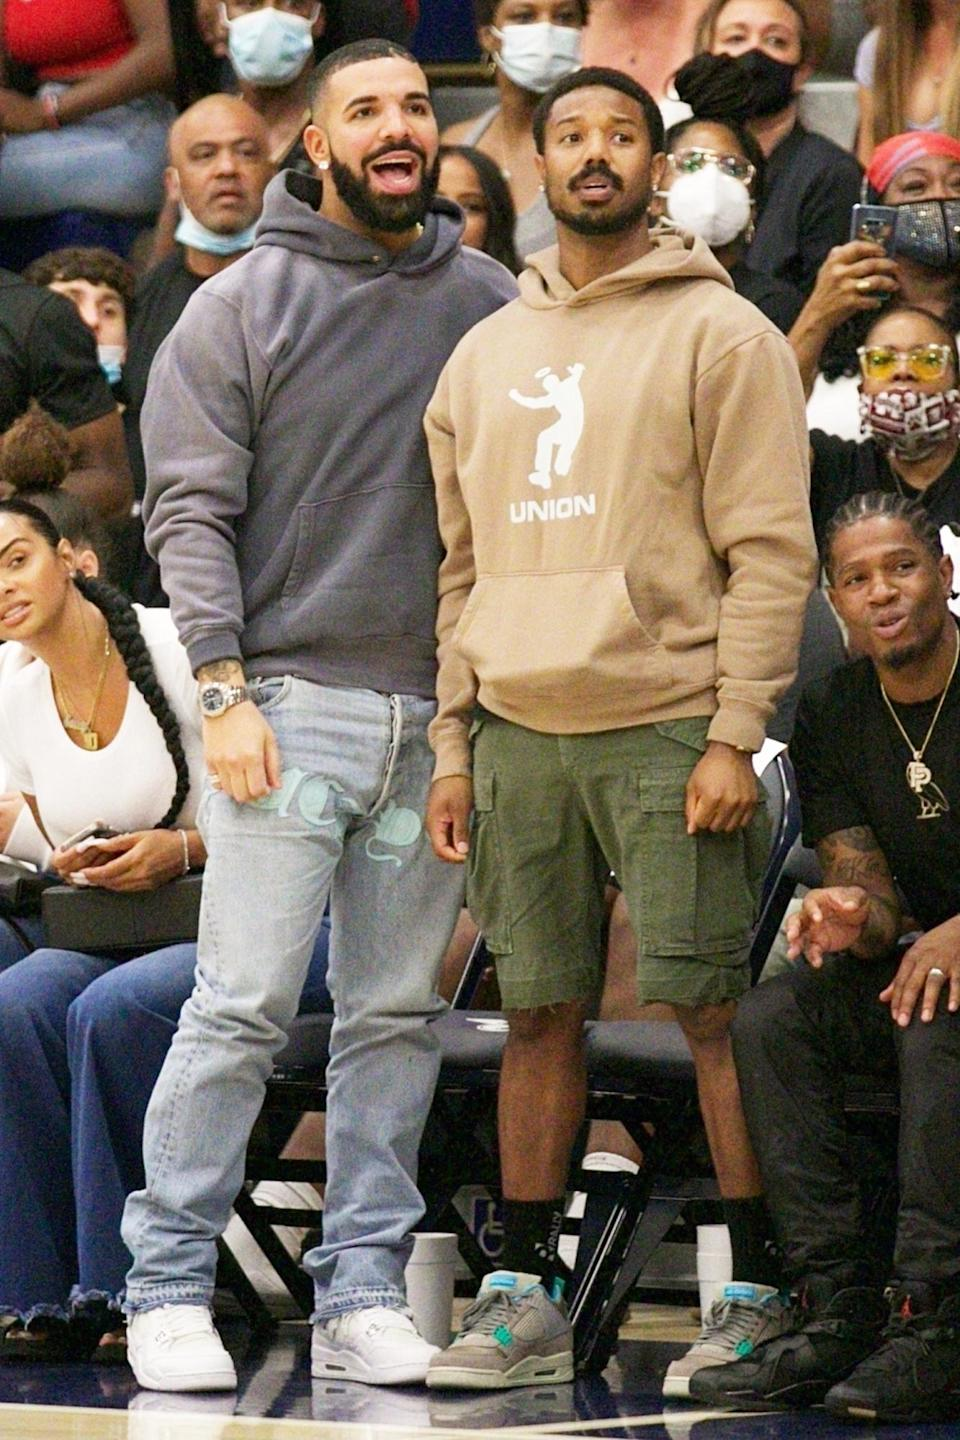 <p>Drake and Michael B. Jordan grab front-row seats on June 17 to watch the Sierra Canyon varsity basketball squad - a.k.a. the team of LeBron James' teen son Bronny - in their last game of the season.</p>